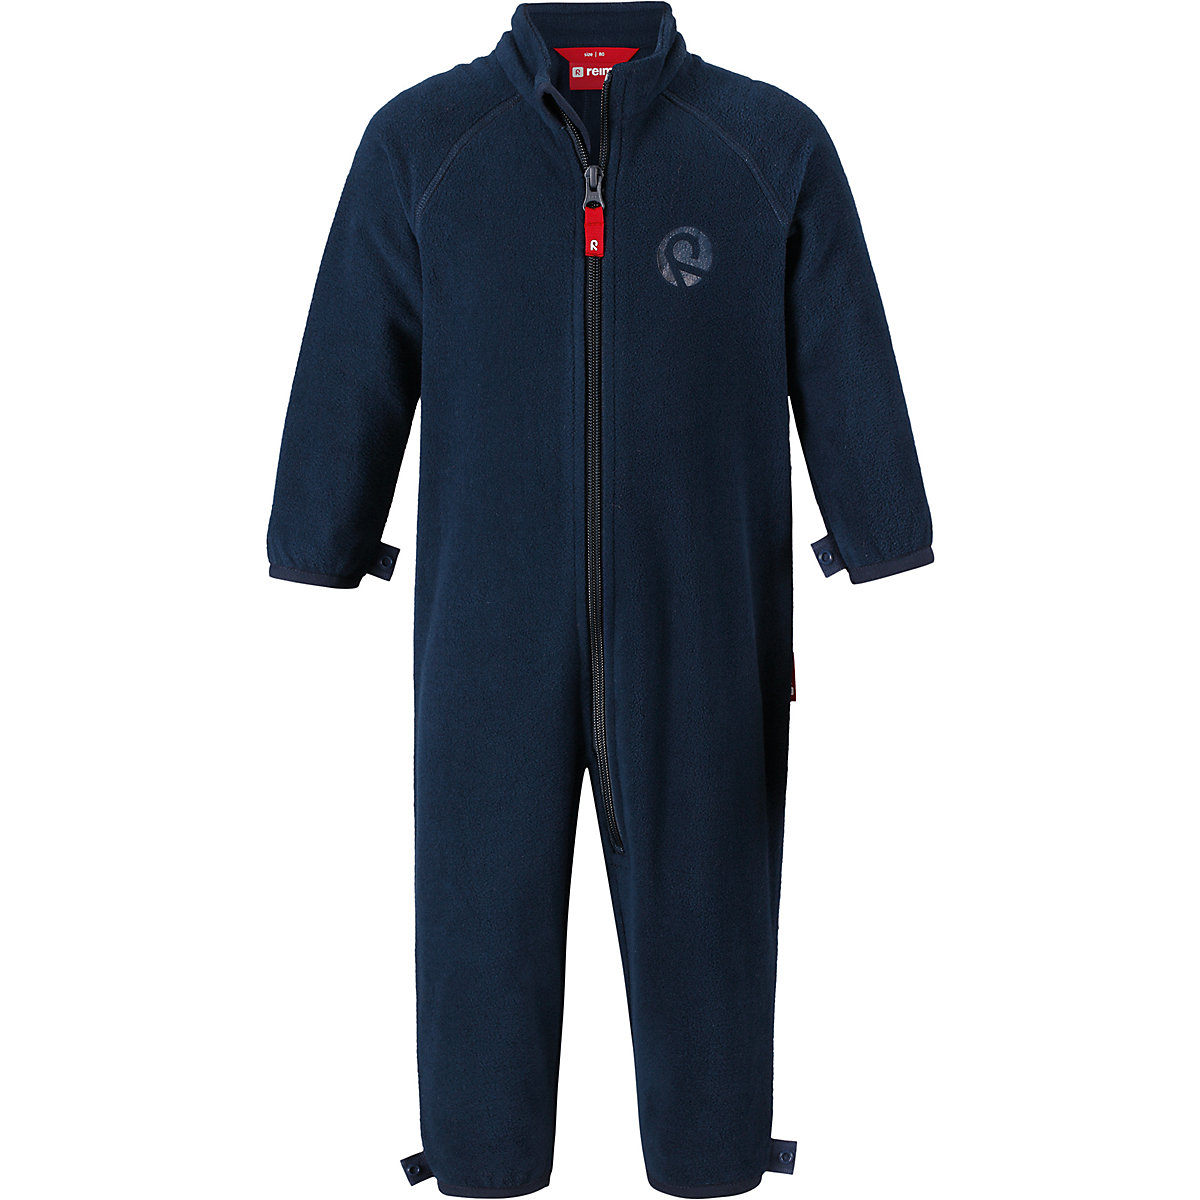 REIMA Overalls  8689568 for boys and girls polyester winter reima overalls 7628255 for boys and girls polyester winter